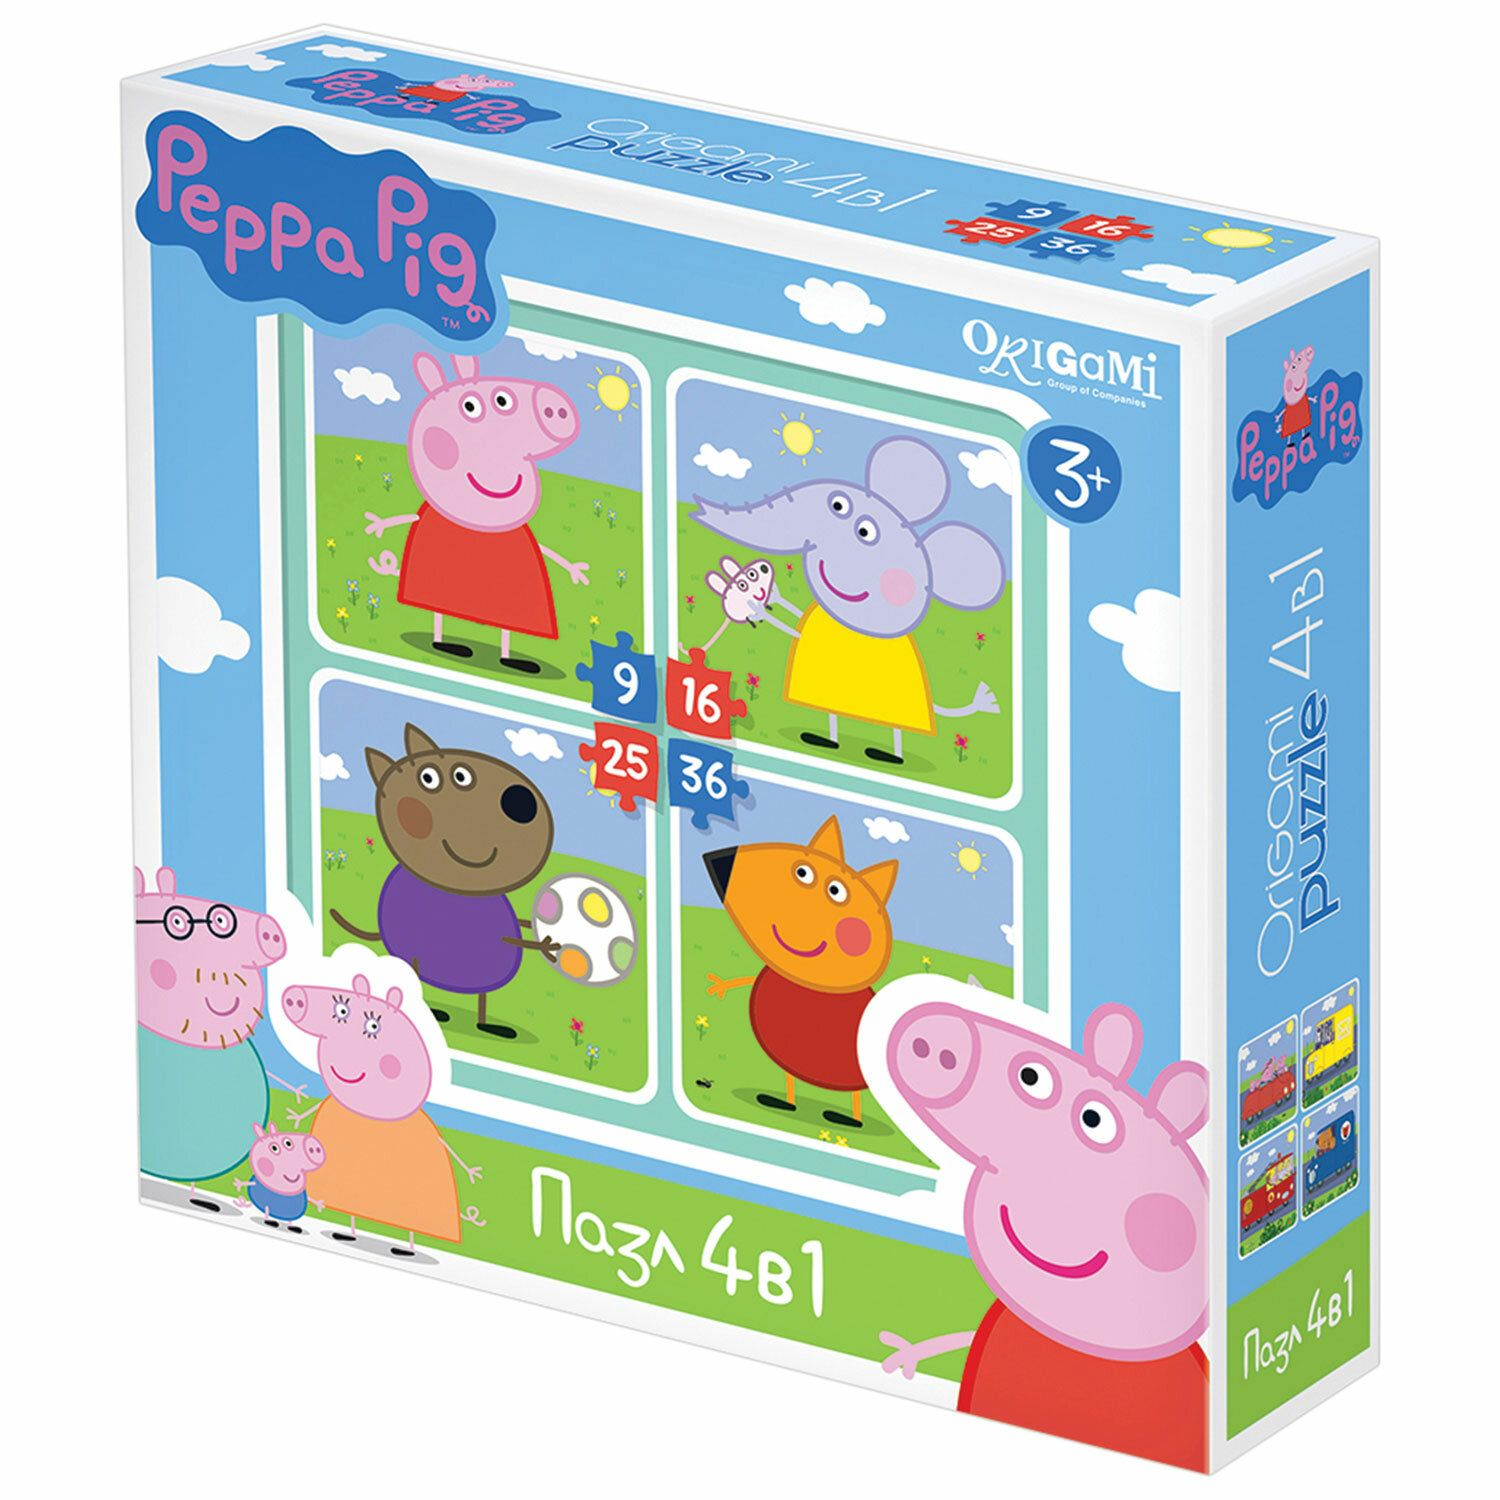 """Puzzle Peppa Pig """"walking"""", """"4 in 1"""", 9-16-25-36 elements, ORIGAMI"""